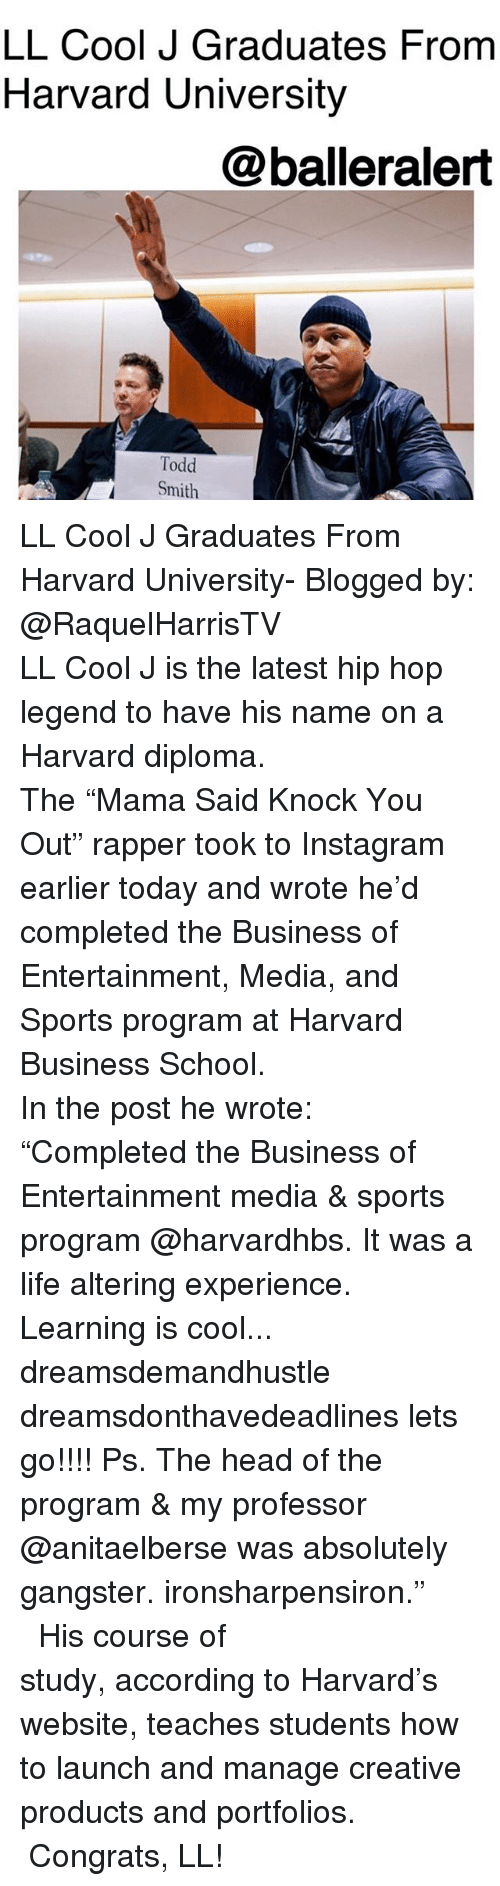 "Head, Instagram, and Life: LL Cool J Graduates From  Harvard University  @balleralert  Todd  Smith LL Cool J Graduates From Harvard University- Blogged by: @RaquelHarrisTV ⠀⠀⠀⠀⠀⠀⠀⠀⠀ ⠀⠀⠀⠀⠀⠀⠀⠀⠀ LL Cool J is the latest hip hop legend to have his name on a Harvard diploma. ⠀⠀⠀⠀⠀⠀⠀⠀⠀ ⠀⠀⠀⠀⠀⠀⠀⠀⠀ The ""Mama Said Knock You Out"" rapper took to Instagram earlier today and wrote he'd completed the Business of Entertainment, Media, and Sports program at Harvard Business School. ⠀⠀⠀⠀⠀⠀⠀⠀⠀ ⠀⠀⠀⠀⠀⠀⠀⠀⠀ In the post he wrote: ""Completed the Business of Entertainment media & sports program @harvardhbs. It was a life altering experience. Learning is cool... dreamsdemandhustle dreamsdonthavedeadlines lets go!!!! Ps. The head of the program & my professor @anitaelberse was absolutely gangster. ironsharpensiron."" ⠀⠀⠀⠀⠀⠀⠀⠀⠀ ⠀⠀⠀⠀⠀⠀⠀⠀⠀ His course of study, according to Harvard's website, teaches students how to launch and manage creative products and portfolios. ⠀⠀⠀⠀⠀⠀⠀⠀⠀ ⠀⠀⠀⠀⠀⠀⠀⠀⠀ Congrats, LL!"